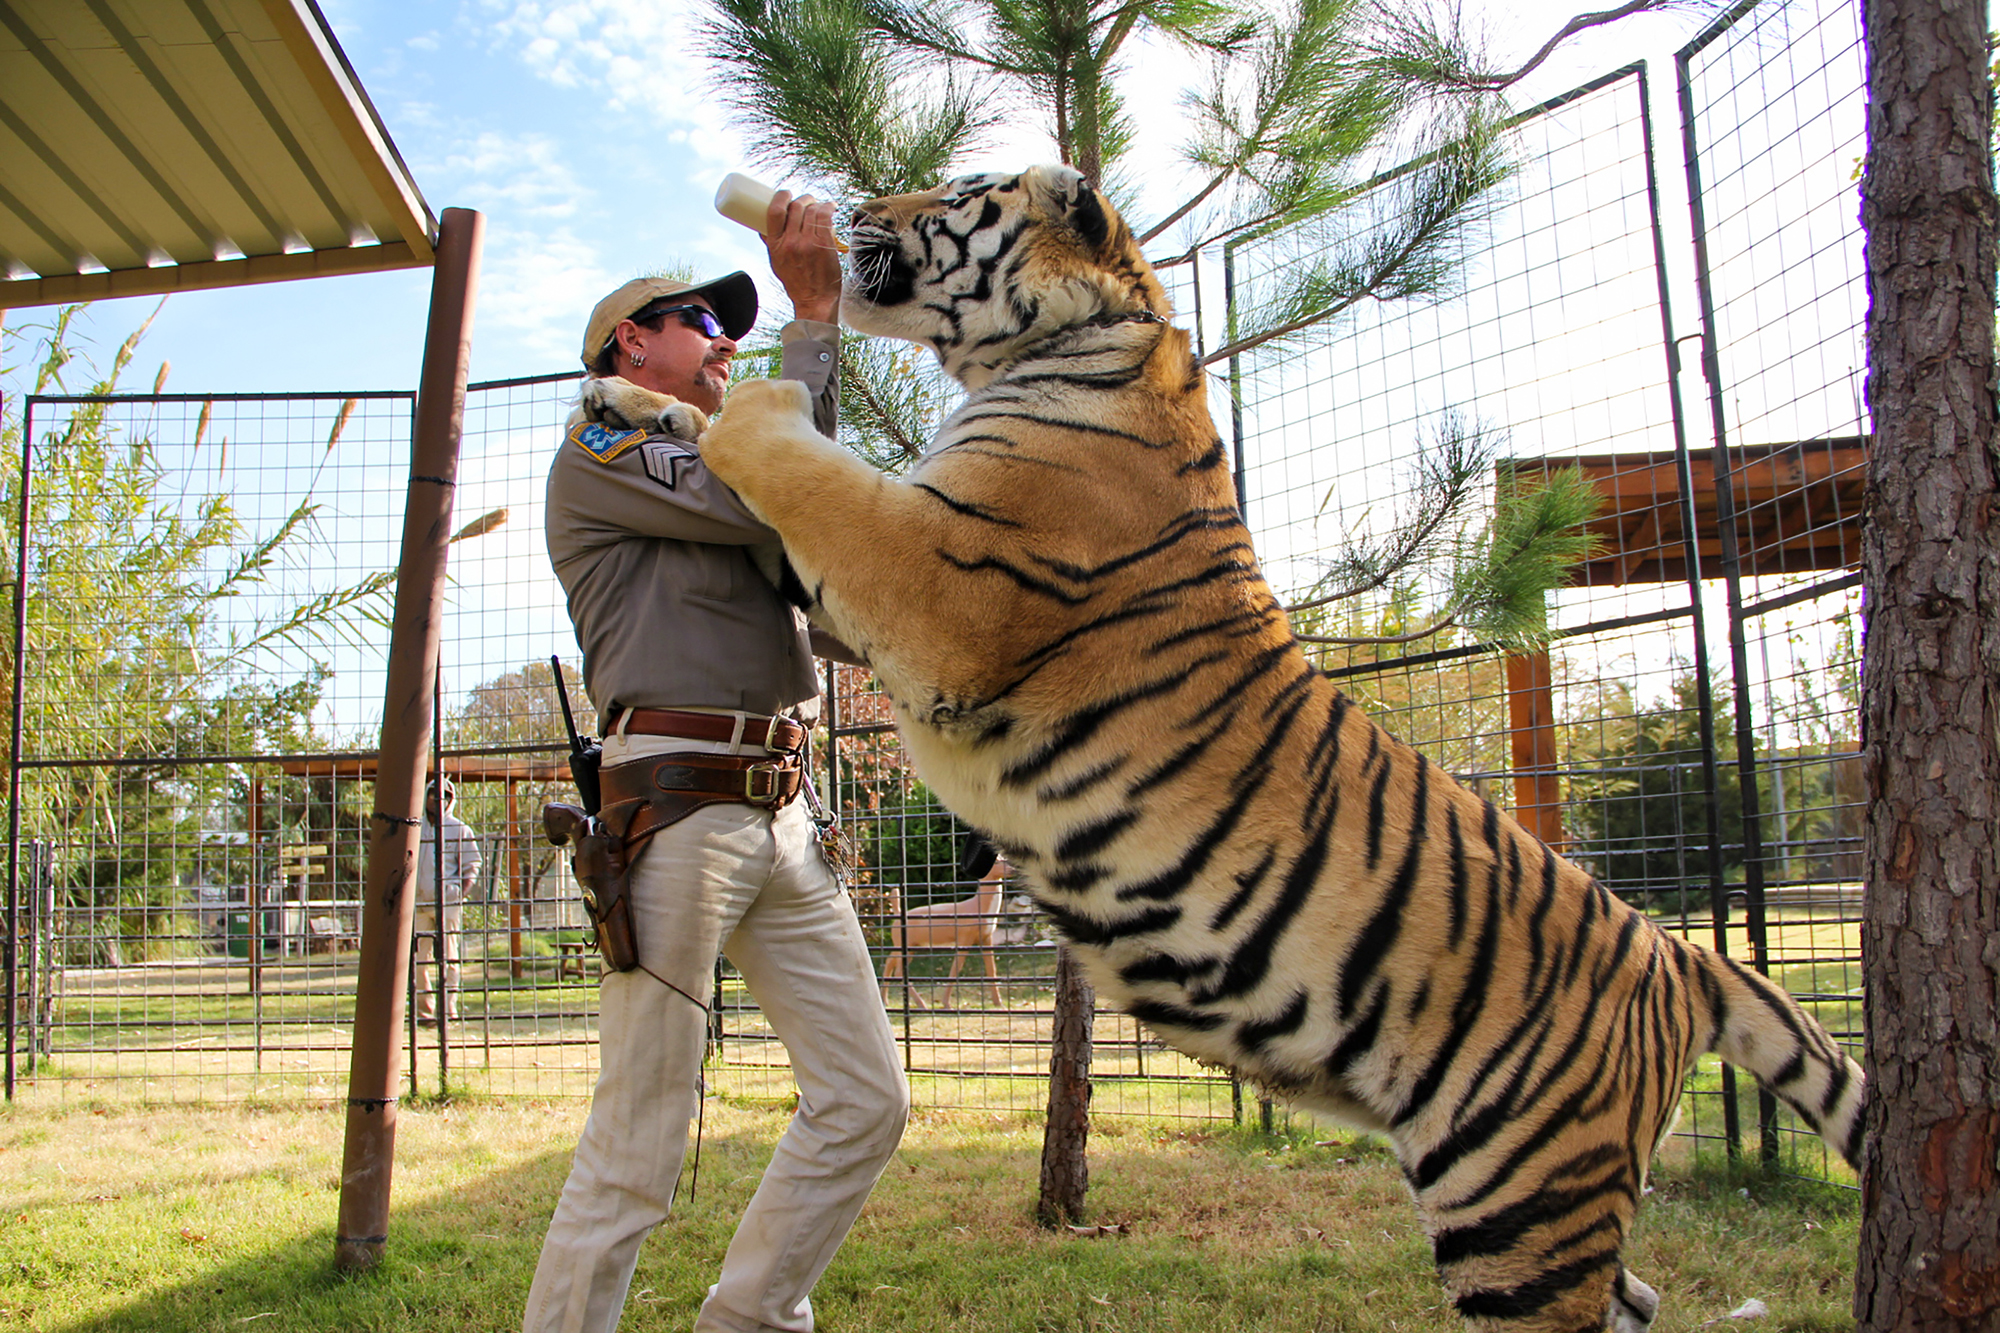 A man standing in an enclosure holds up a milk bottle while a large tiger stands on its back legs drinking it, with its front paws resting on the man's shoulders.